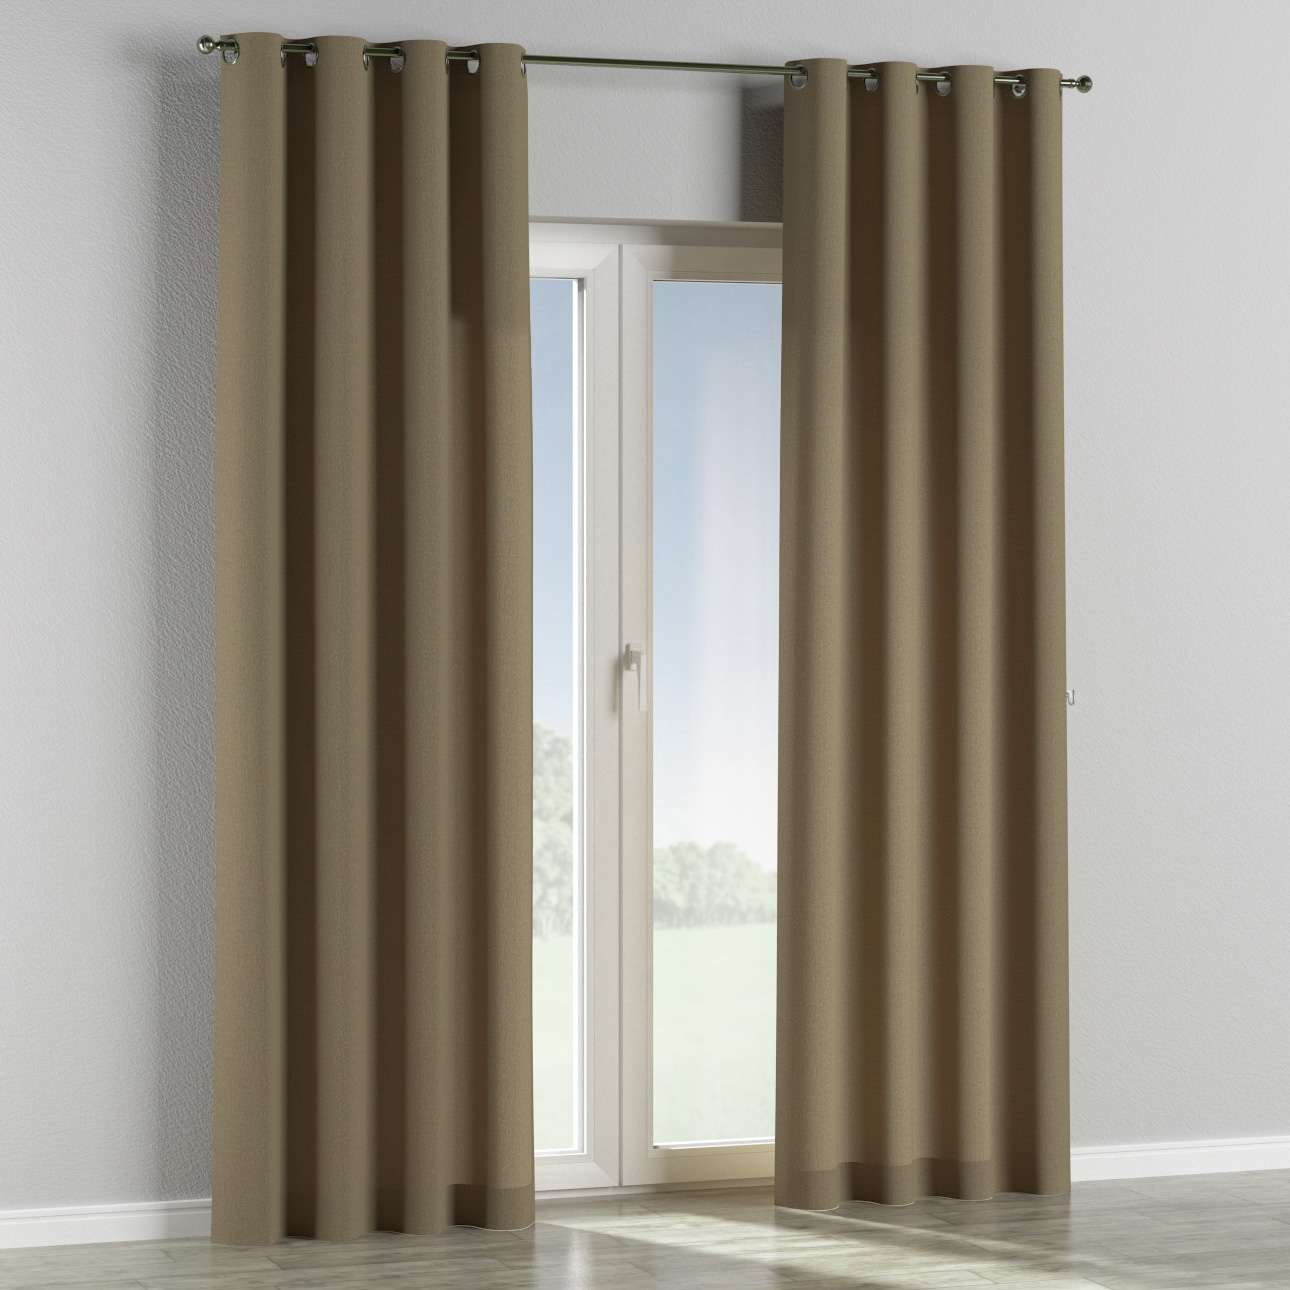 Eyelet curtains in collection Chenille, fabric: 702-21